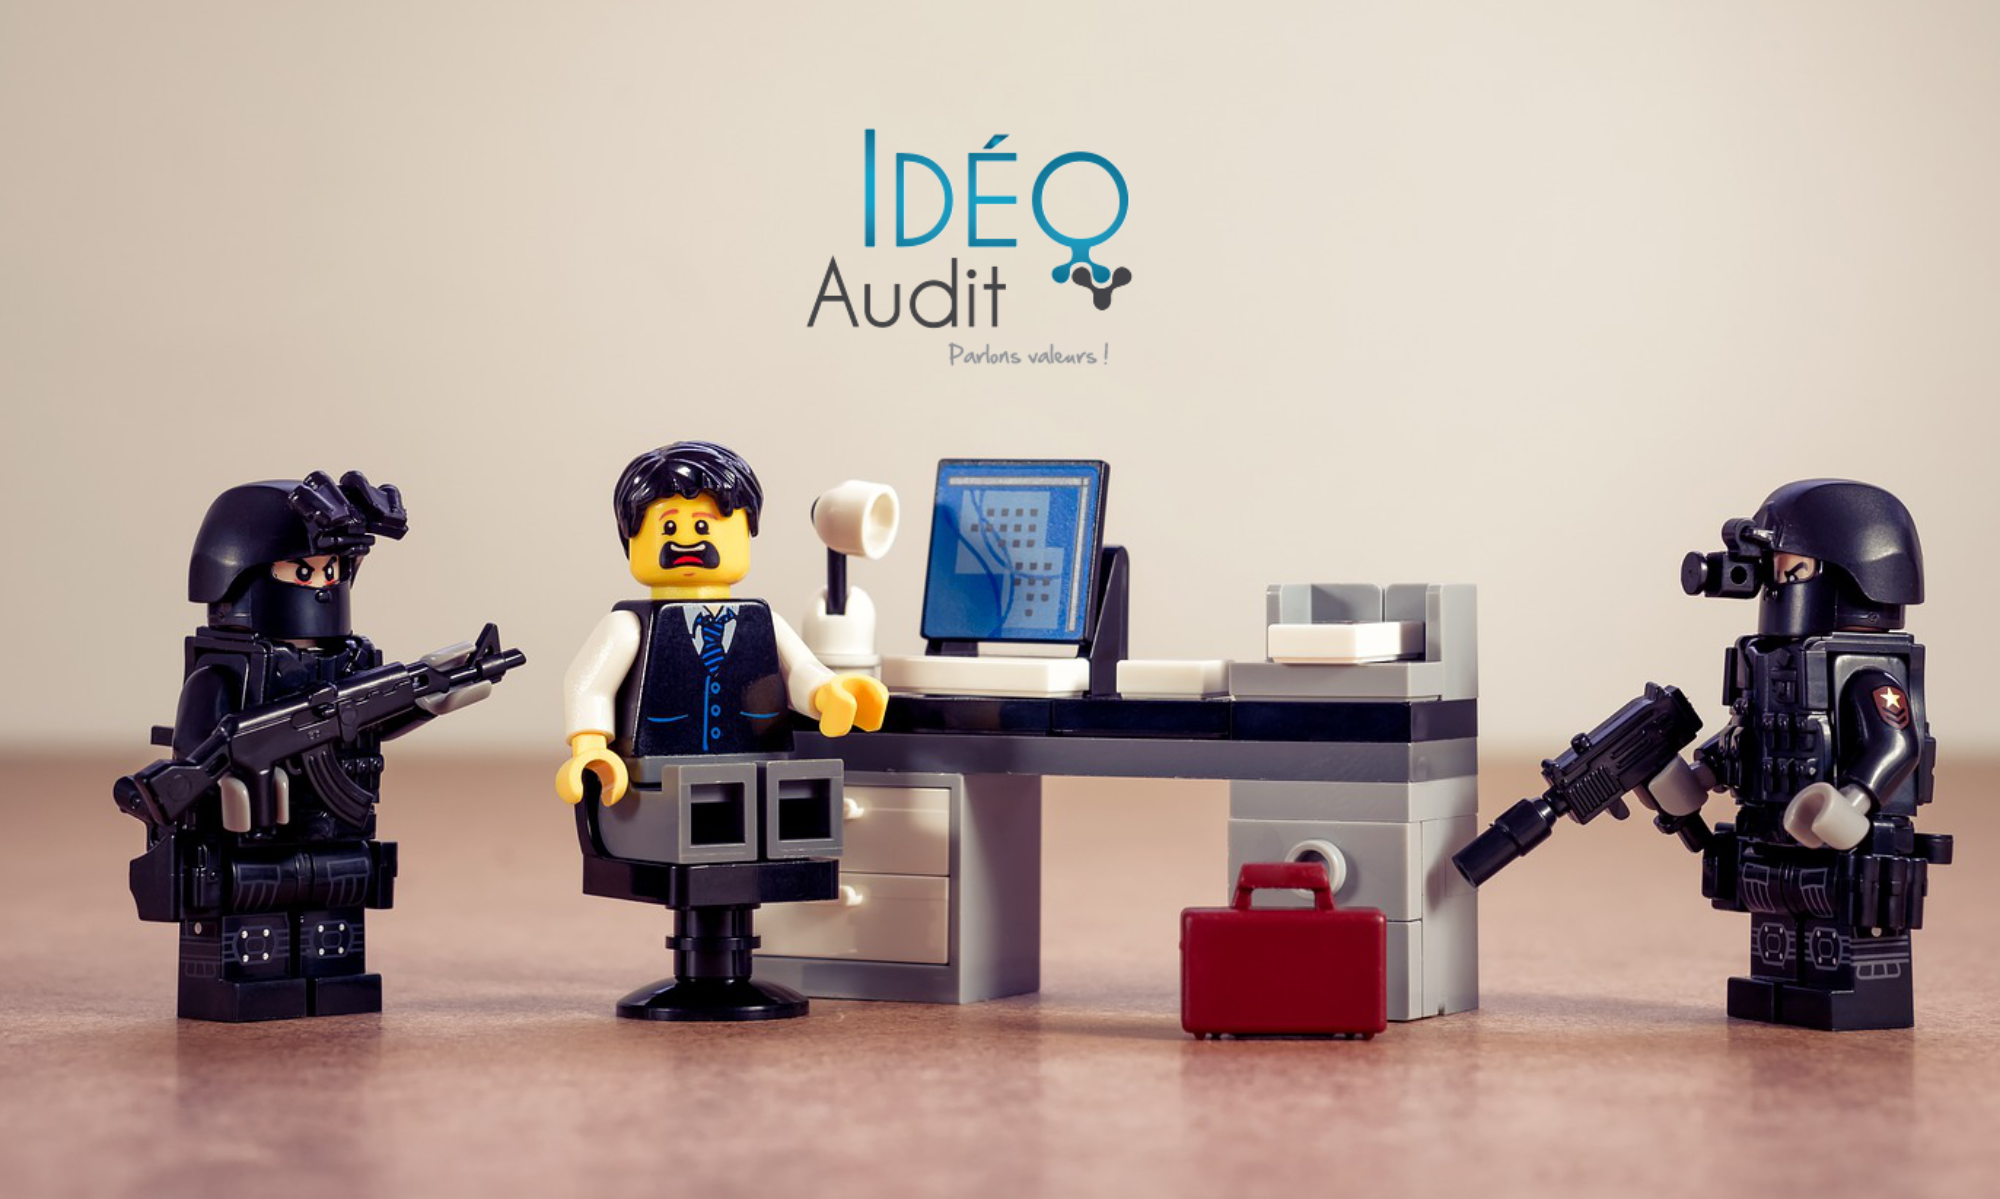 IDEO Audit - Forensic